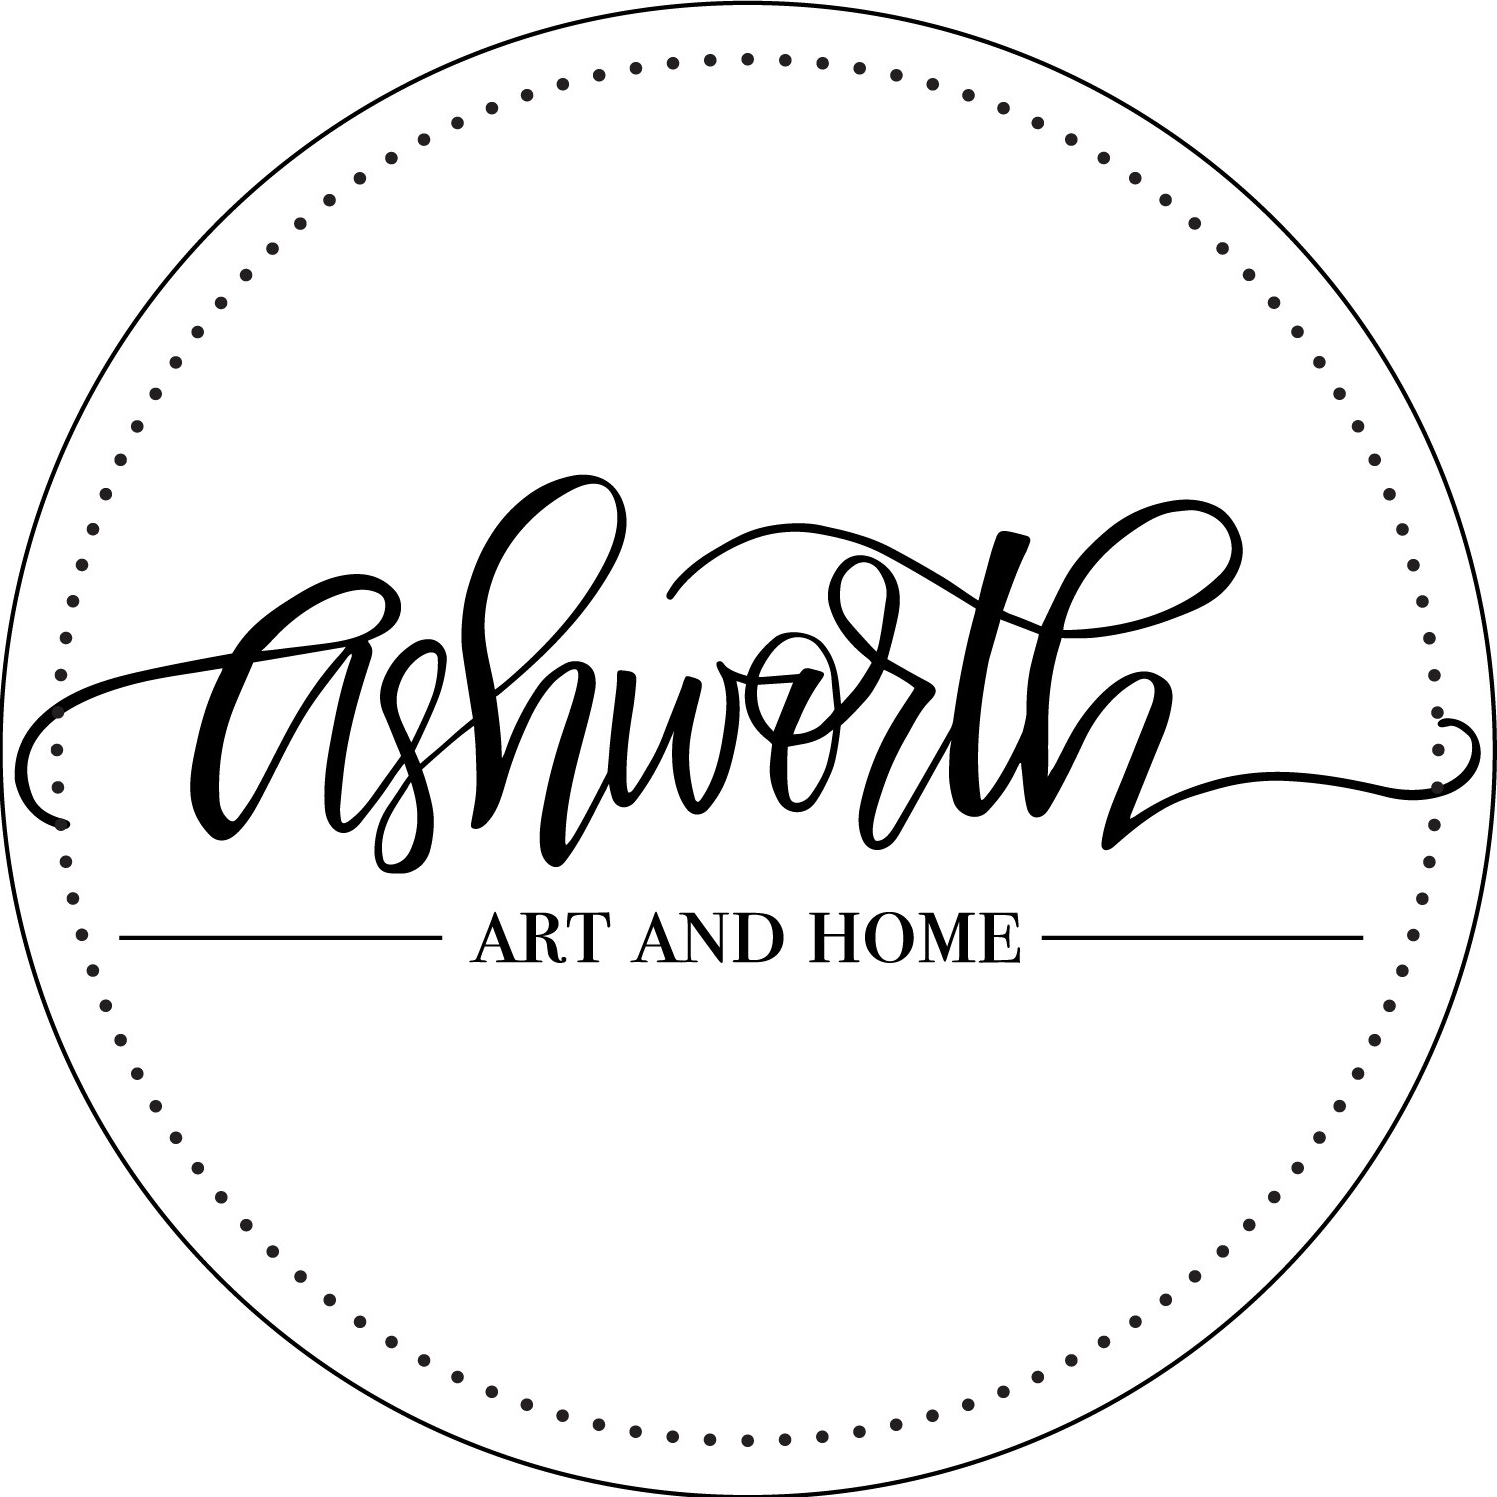 Ashworth Art and Home